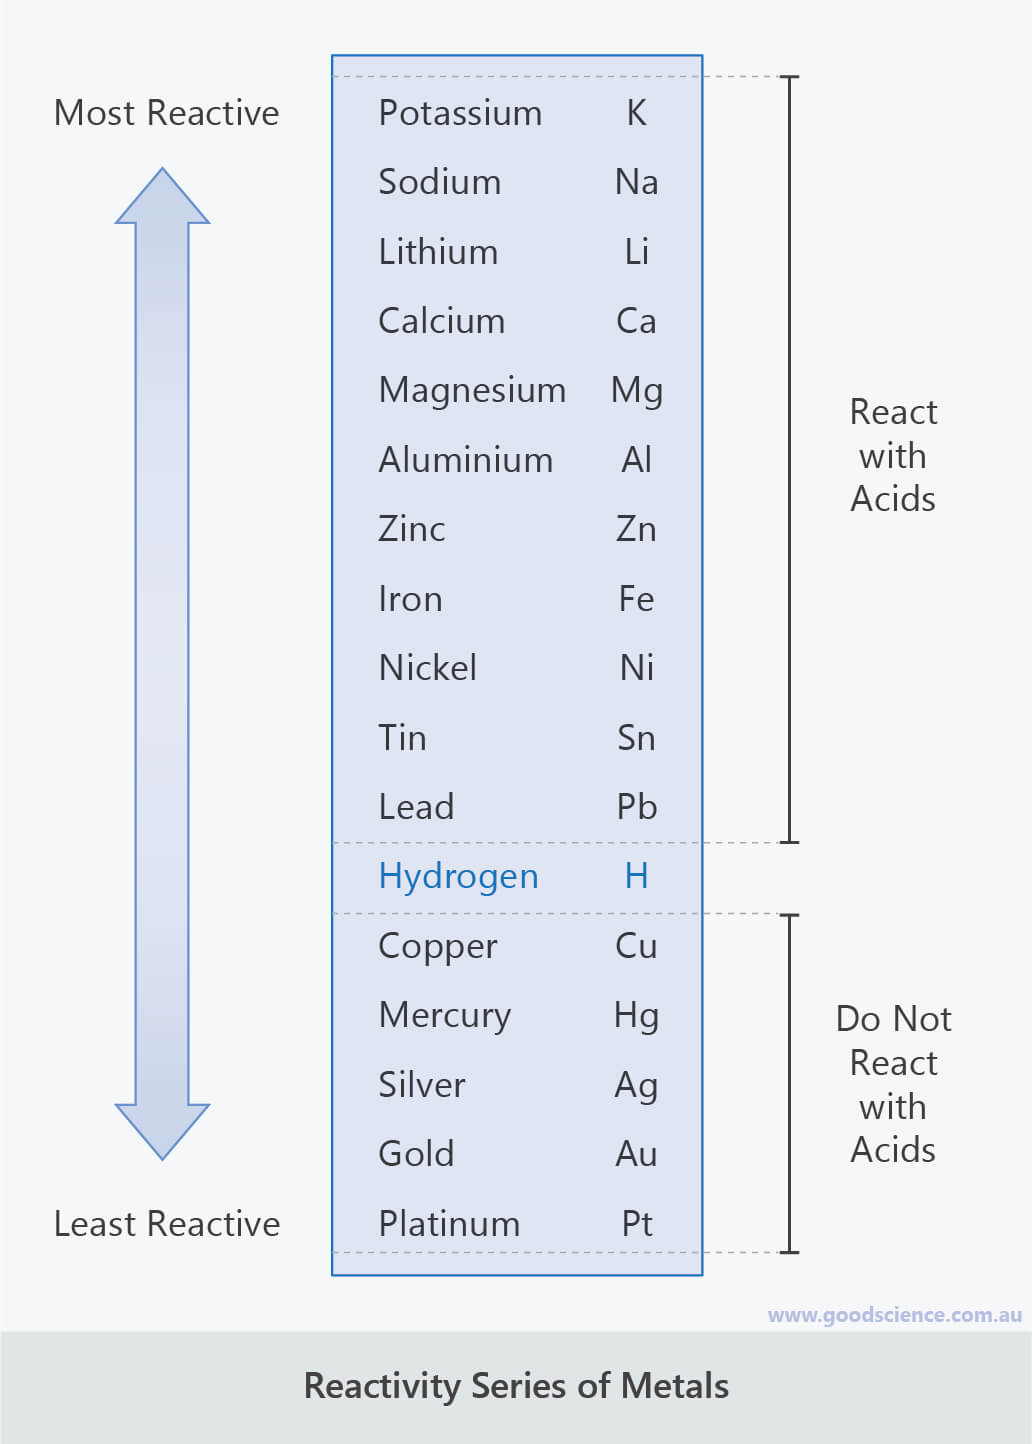 reactivity series of metals acid reactions